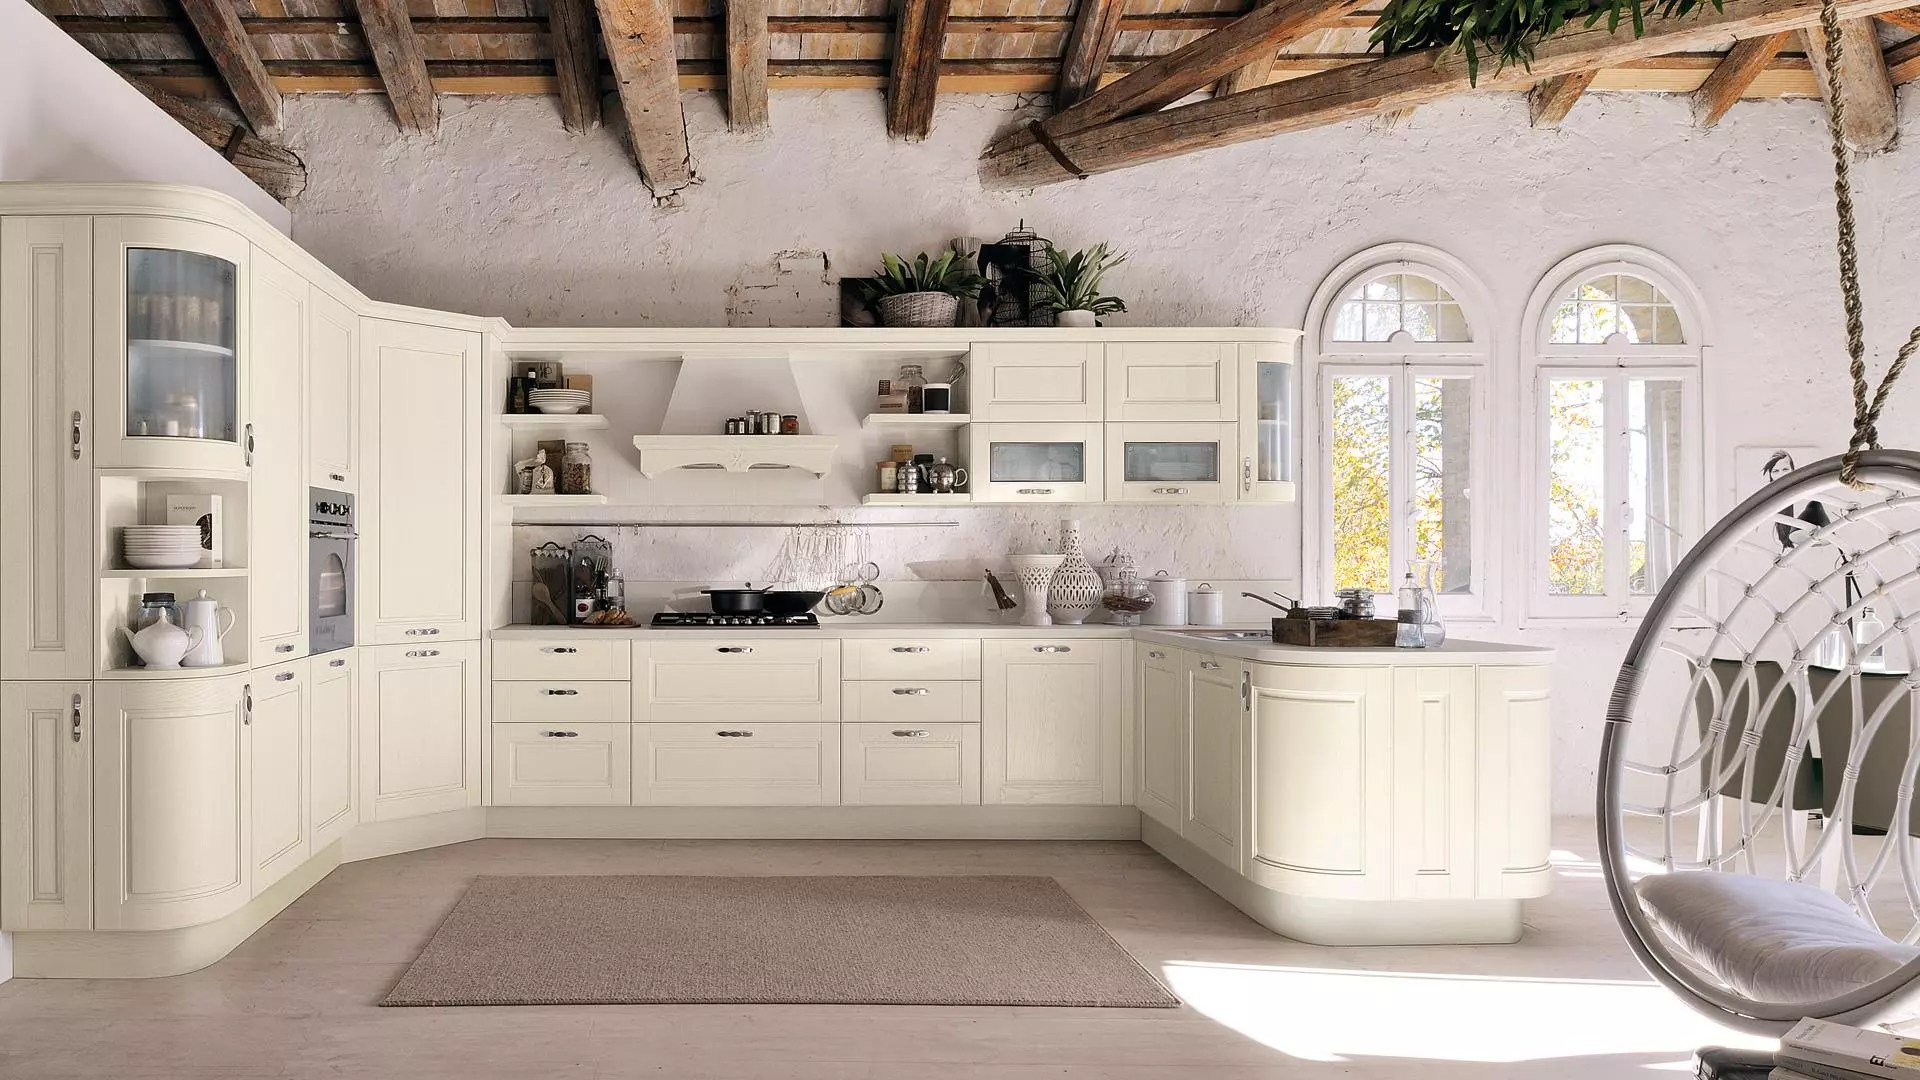 Cucina Country Chic Verde Cucine In Stile Provenzale Le Idee Country Chic Per Chi